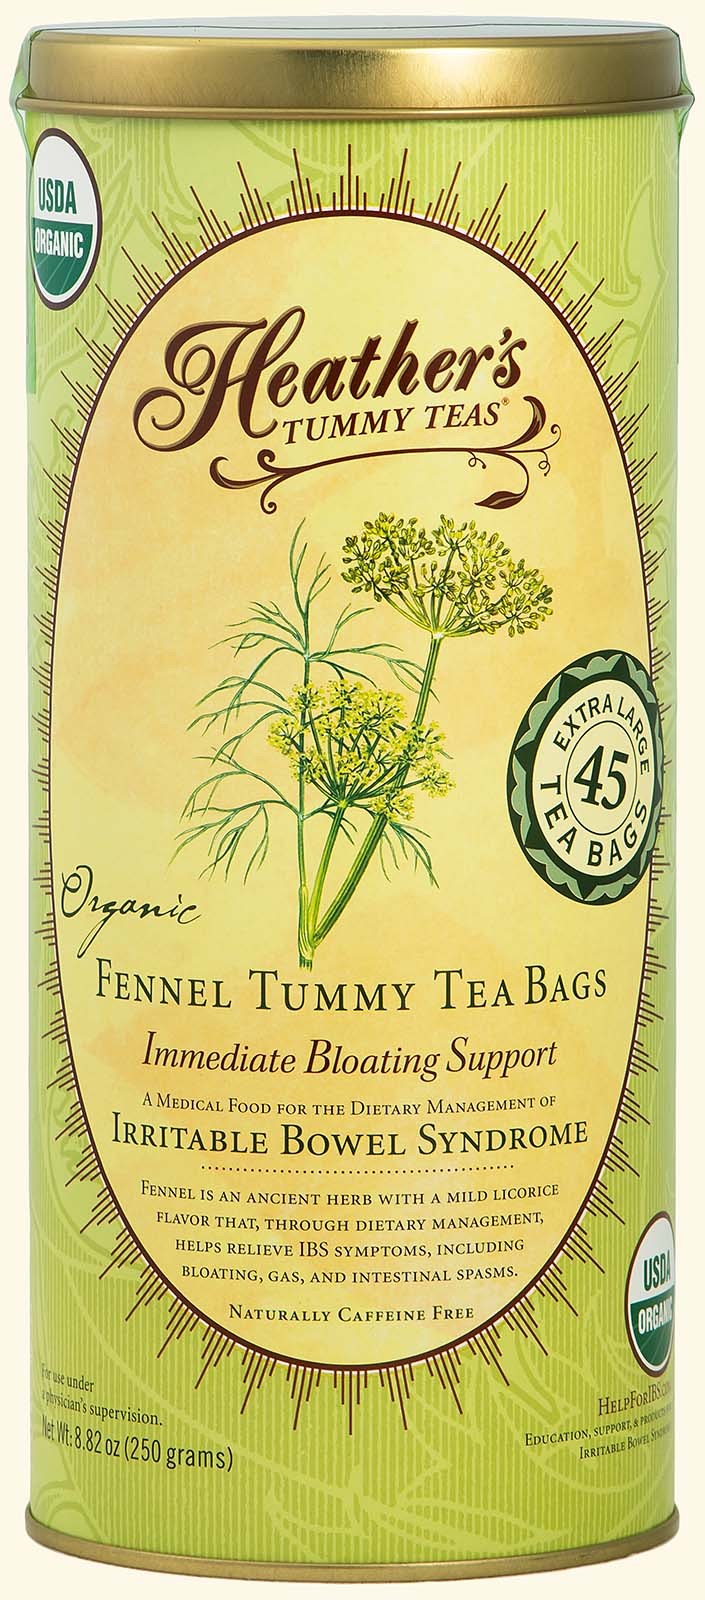 Fennel Tummy TEABAGS<br>45 jumbo bags<br><em>Bloating & Gas</em>